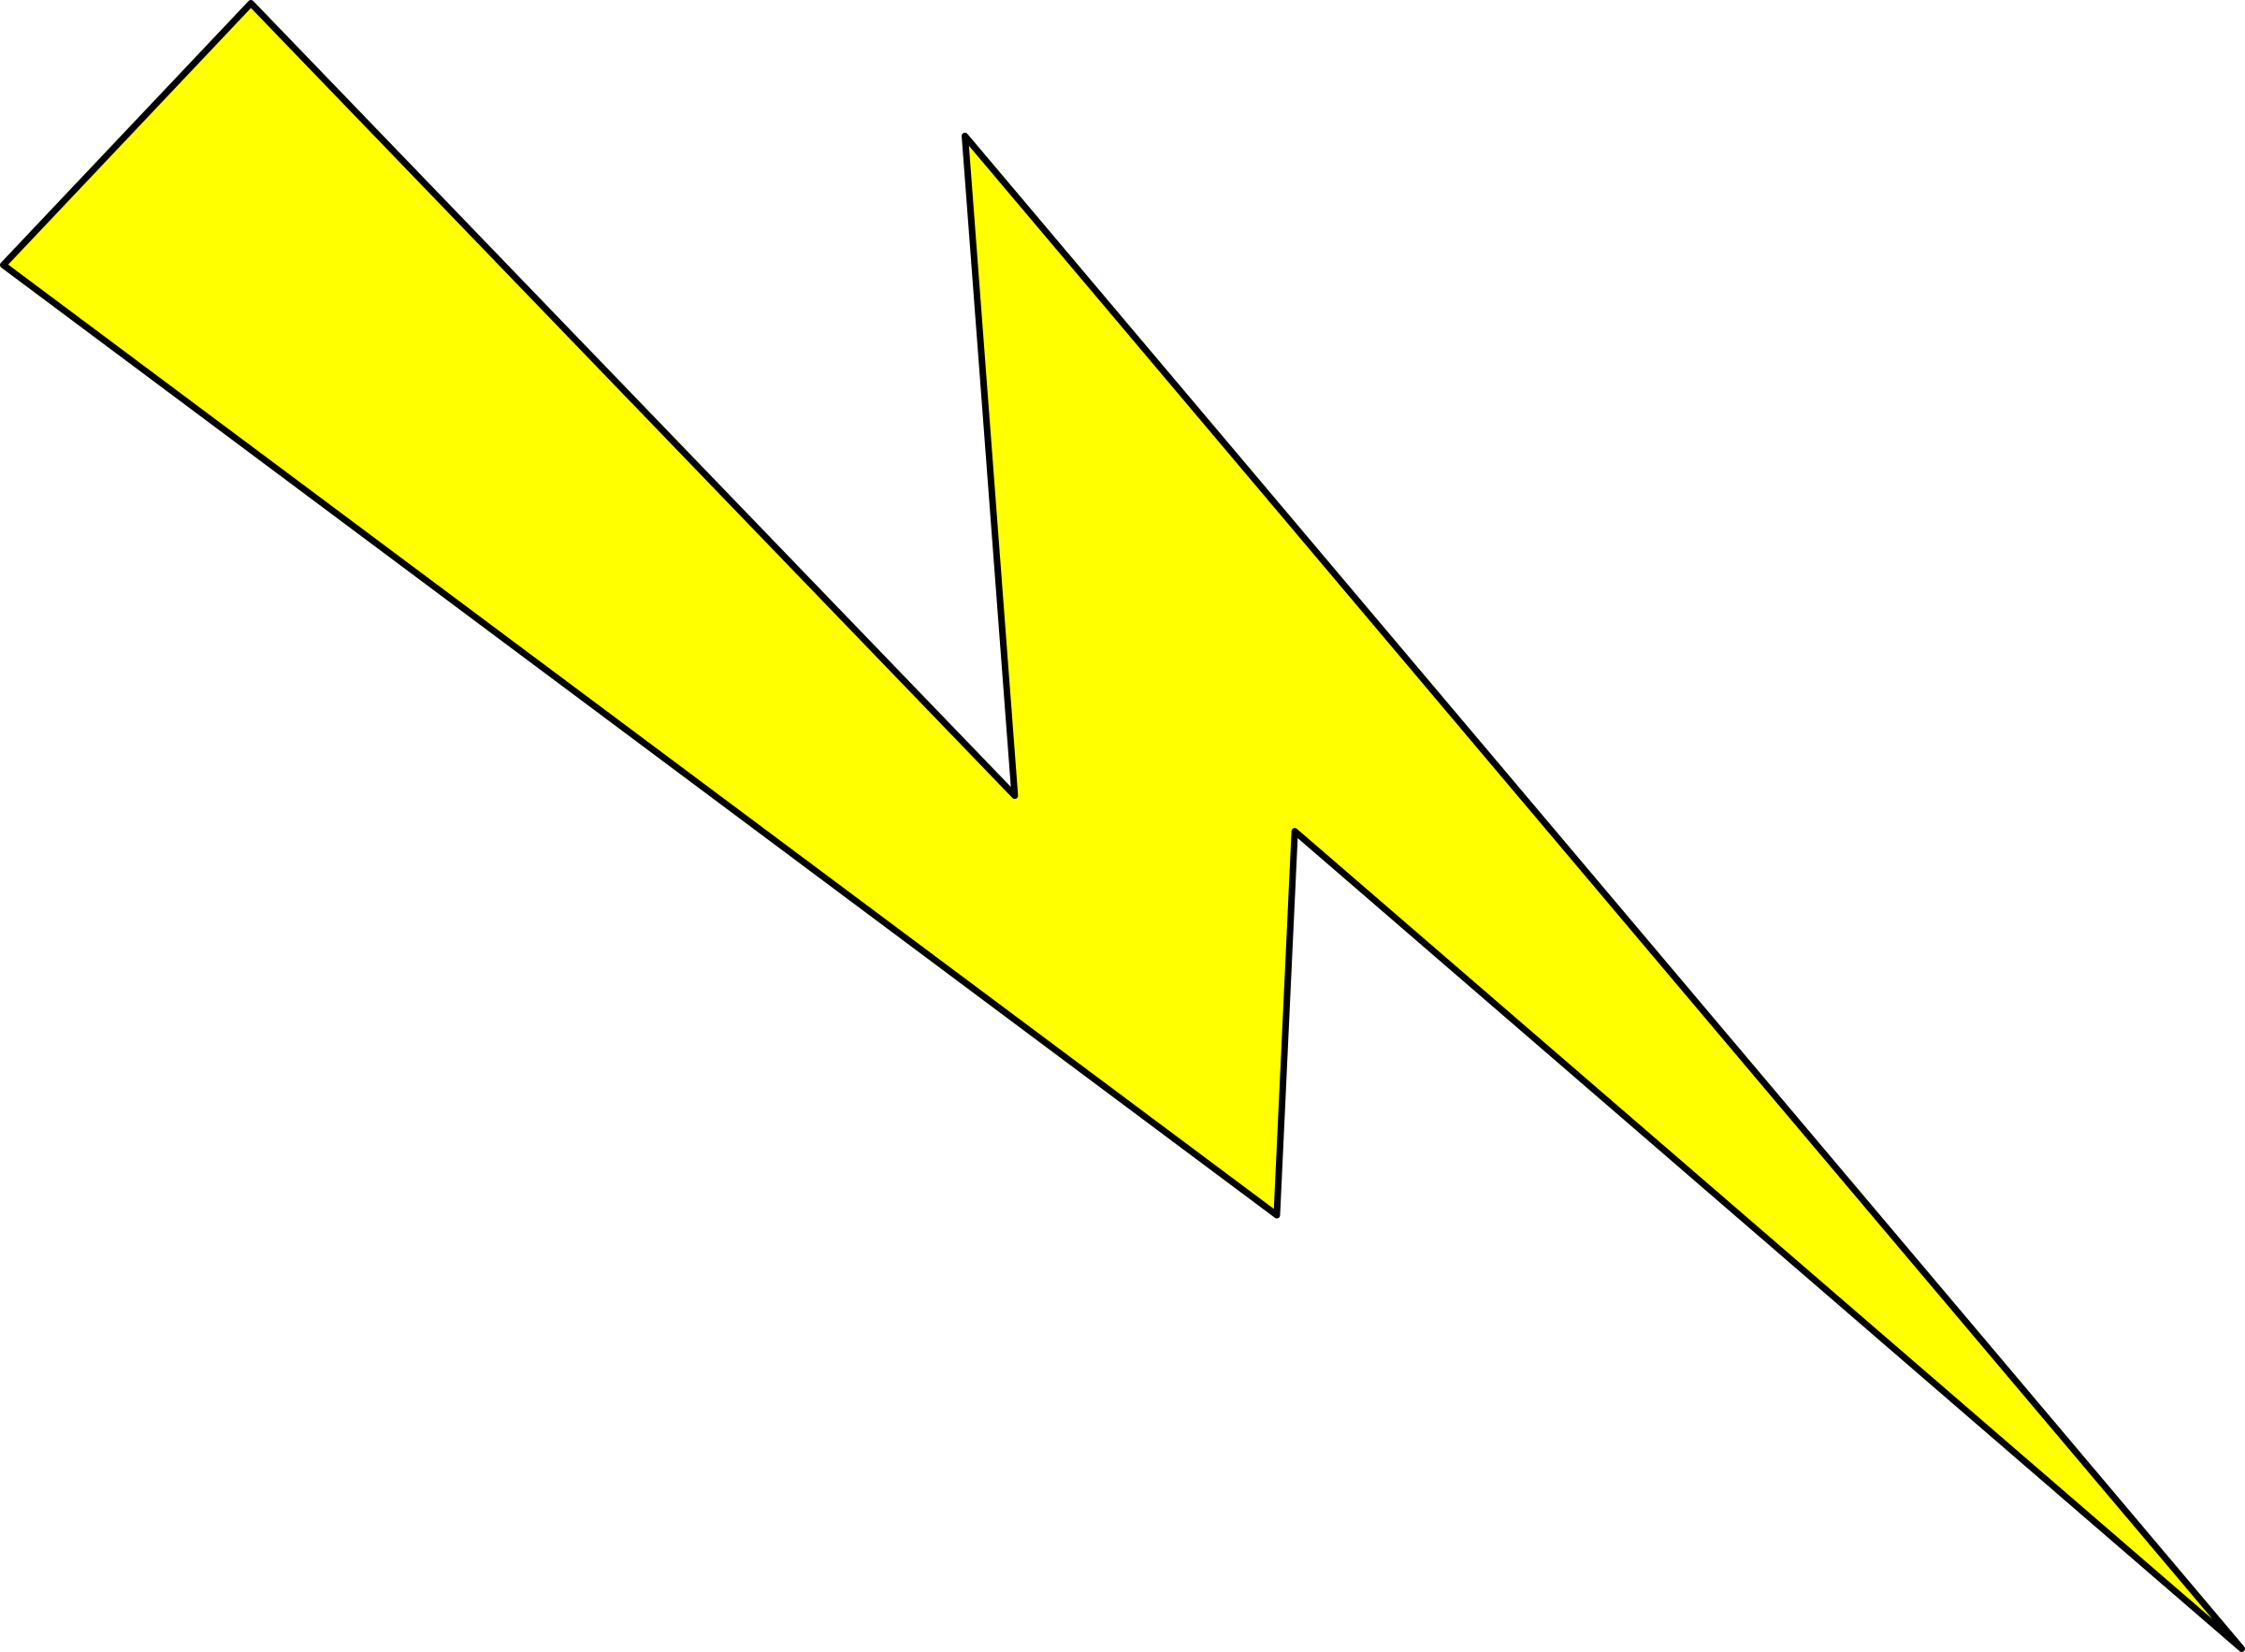 Flash lightning png. Images free download icon